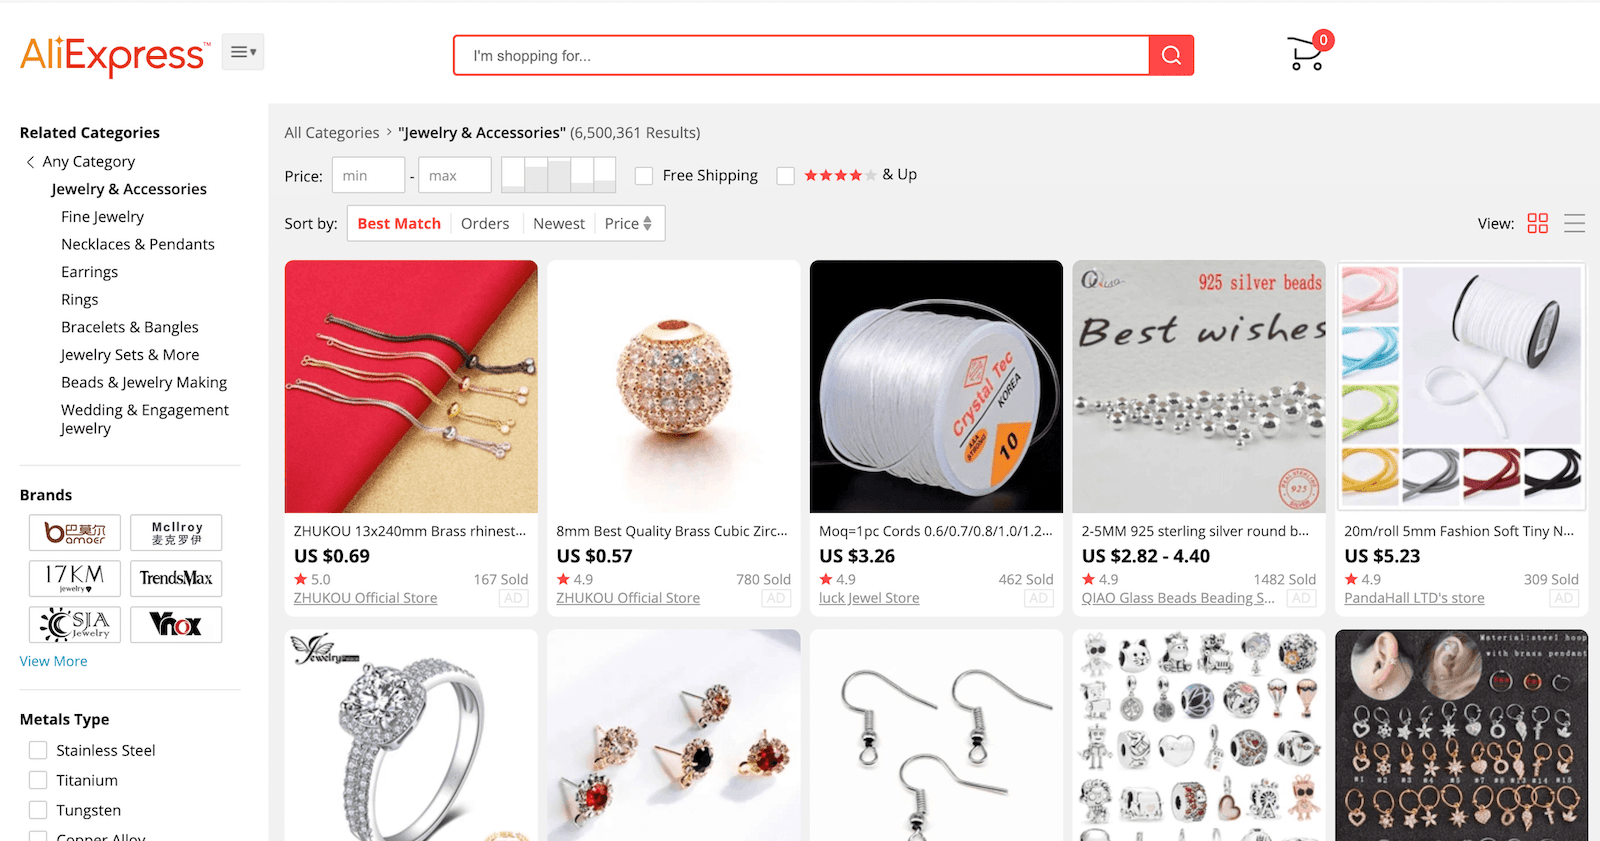 Screenshot of the Aliexpress website